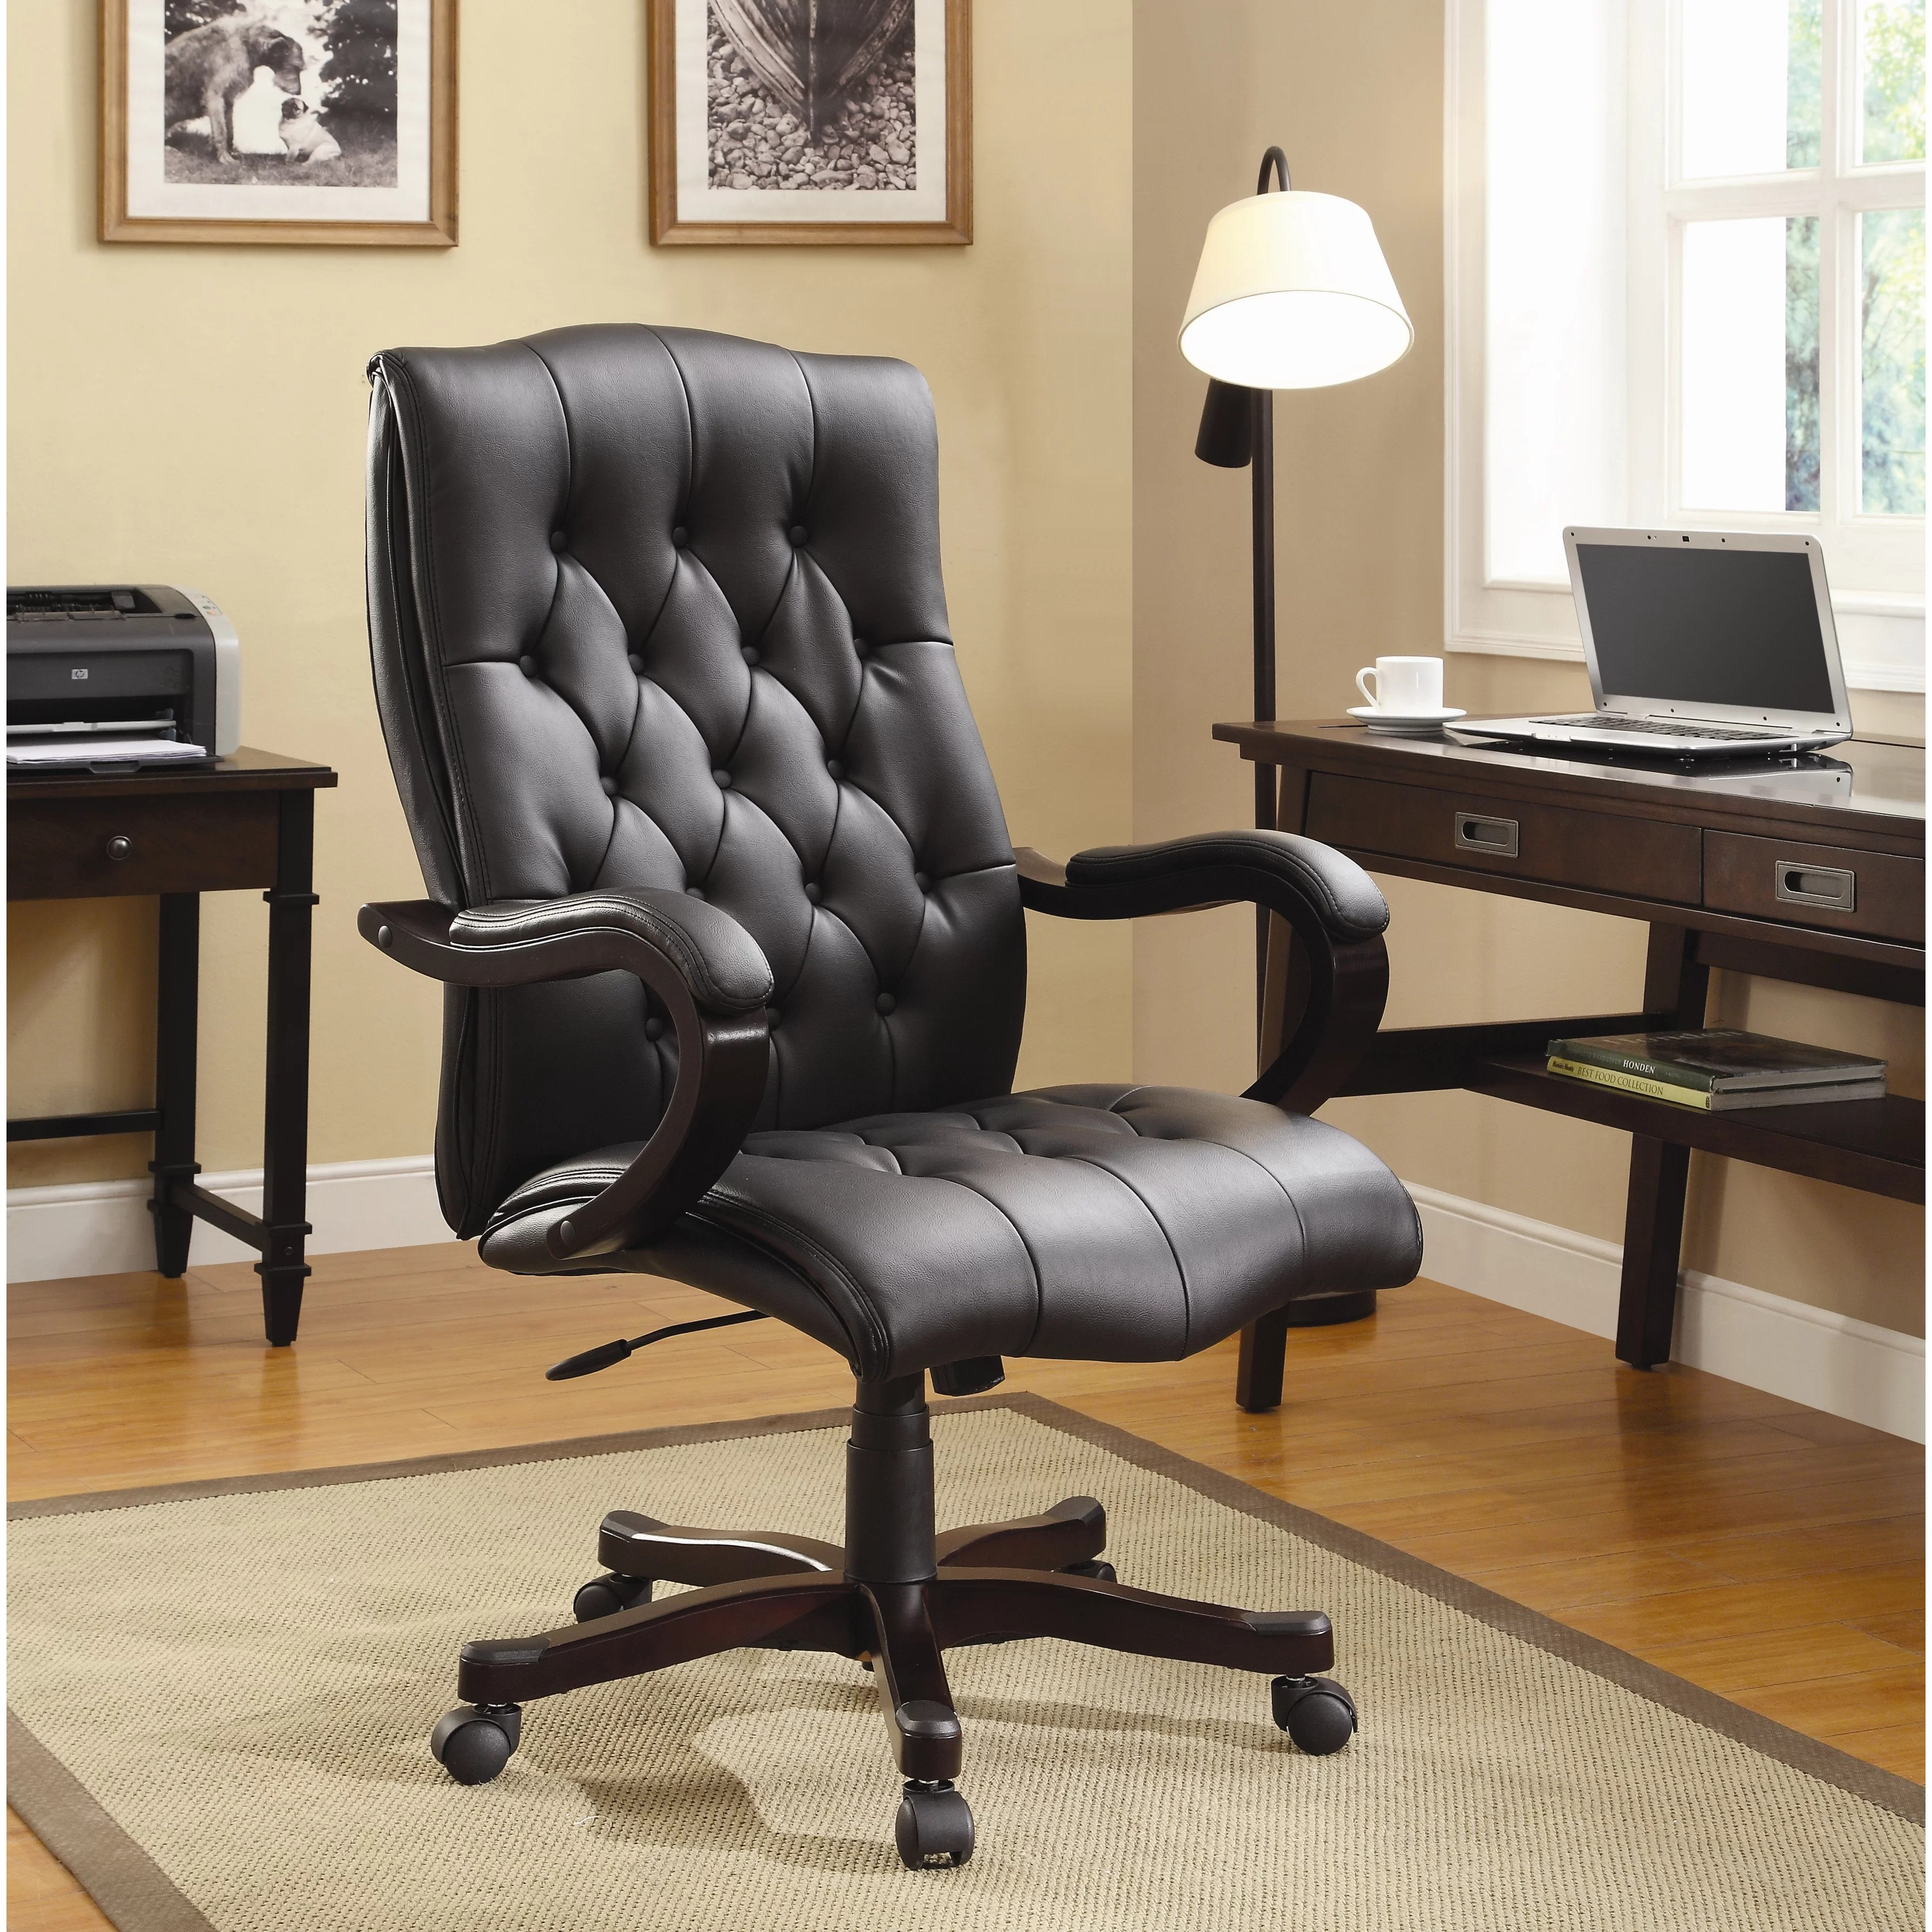 bassett office chair collapsible garden chairs inspired by dixon eco leather executive